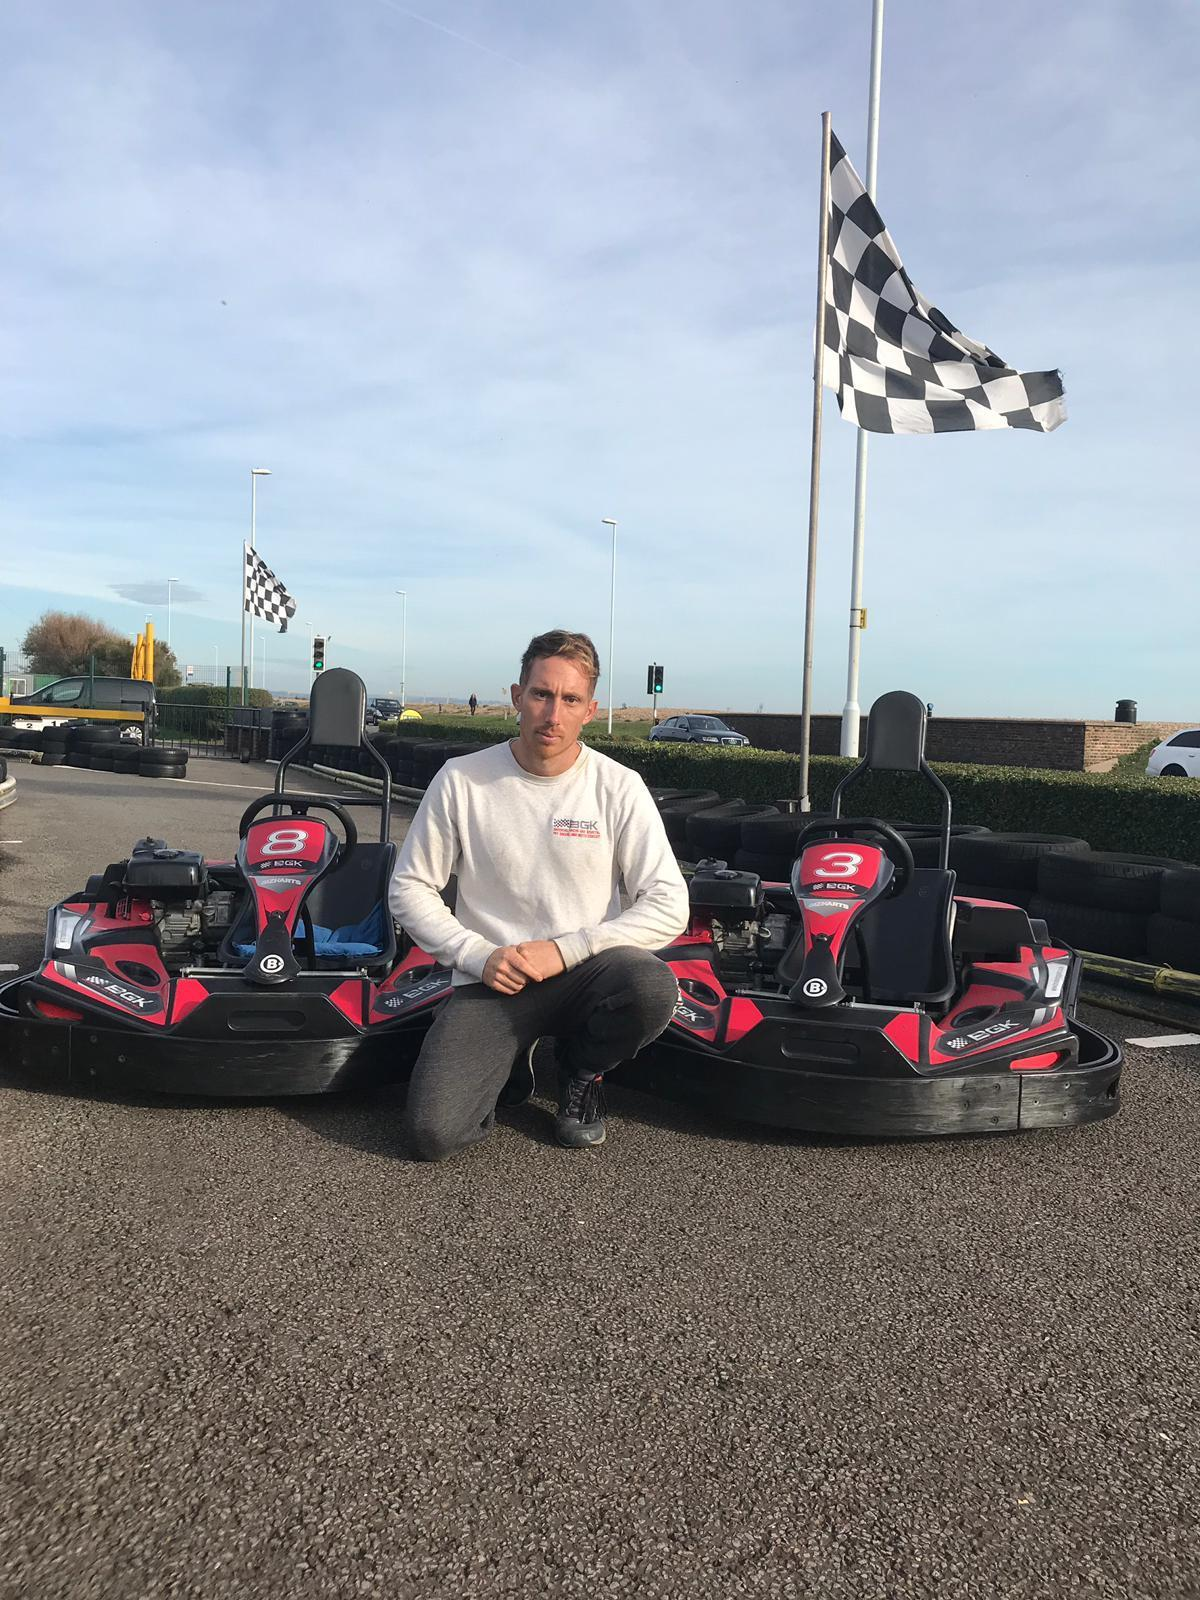 2,500 people sign petition to save go kart firm in Worthing | The Argus